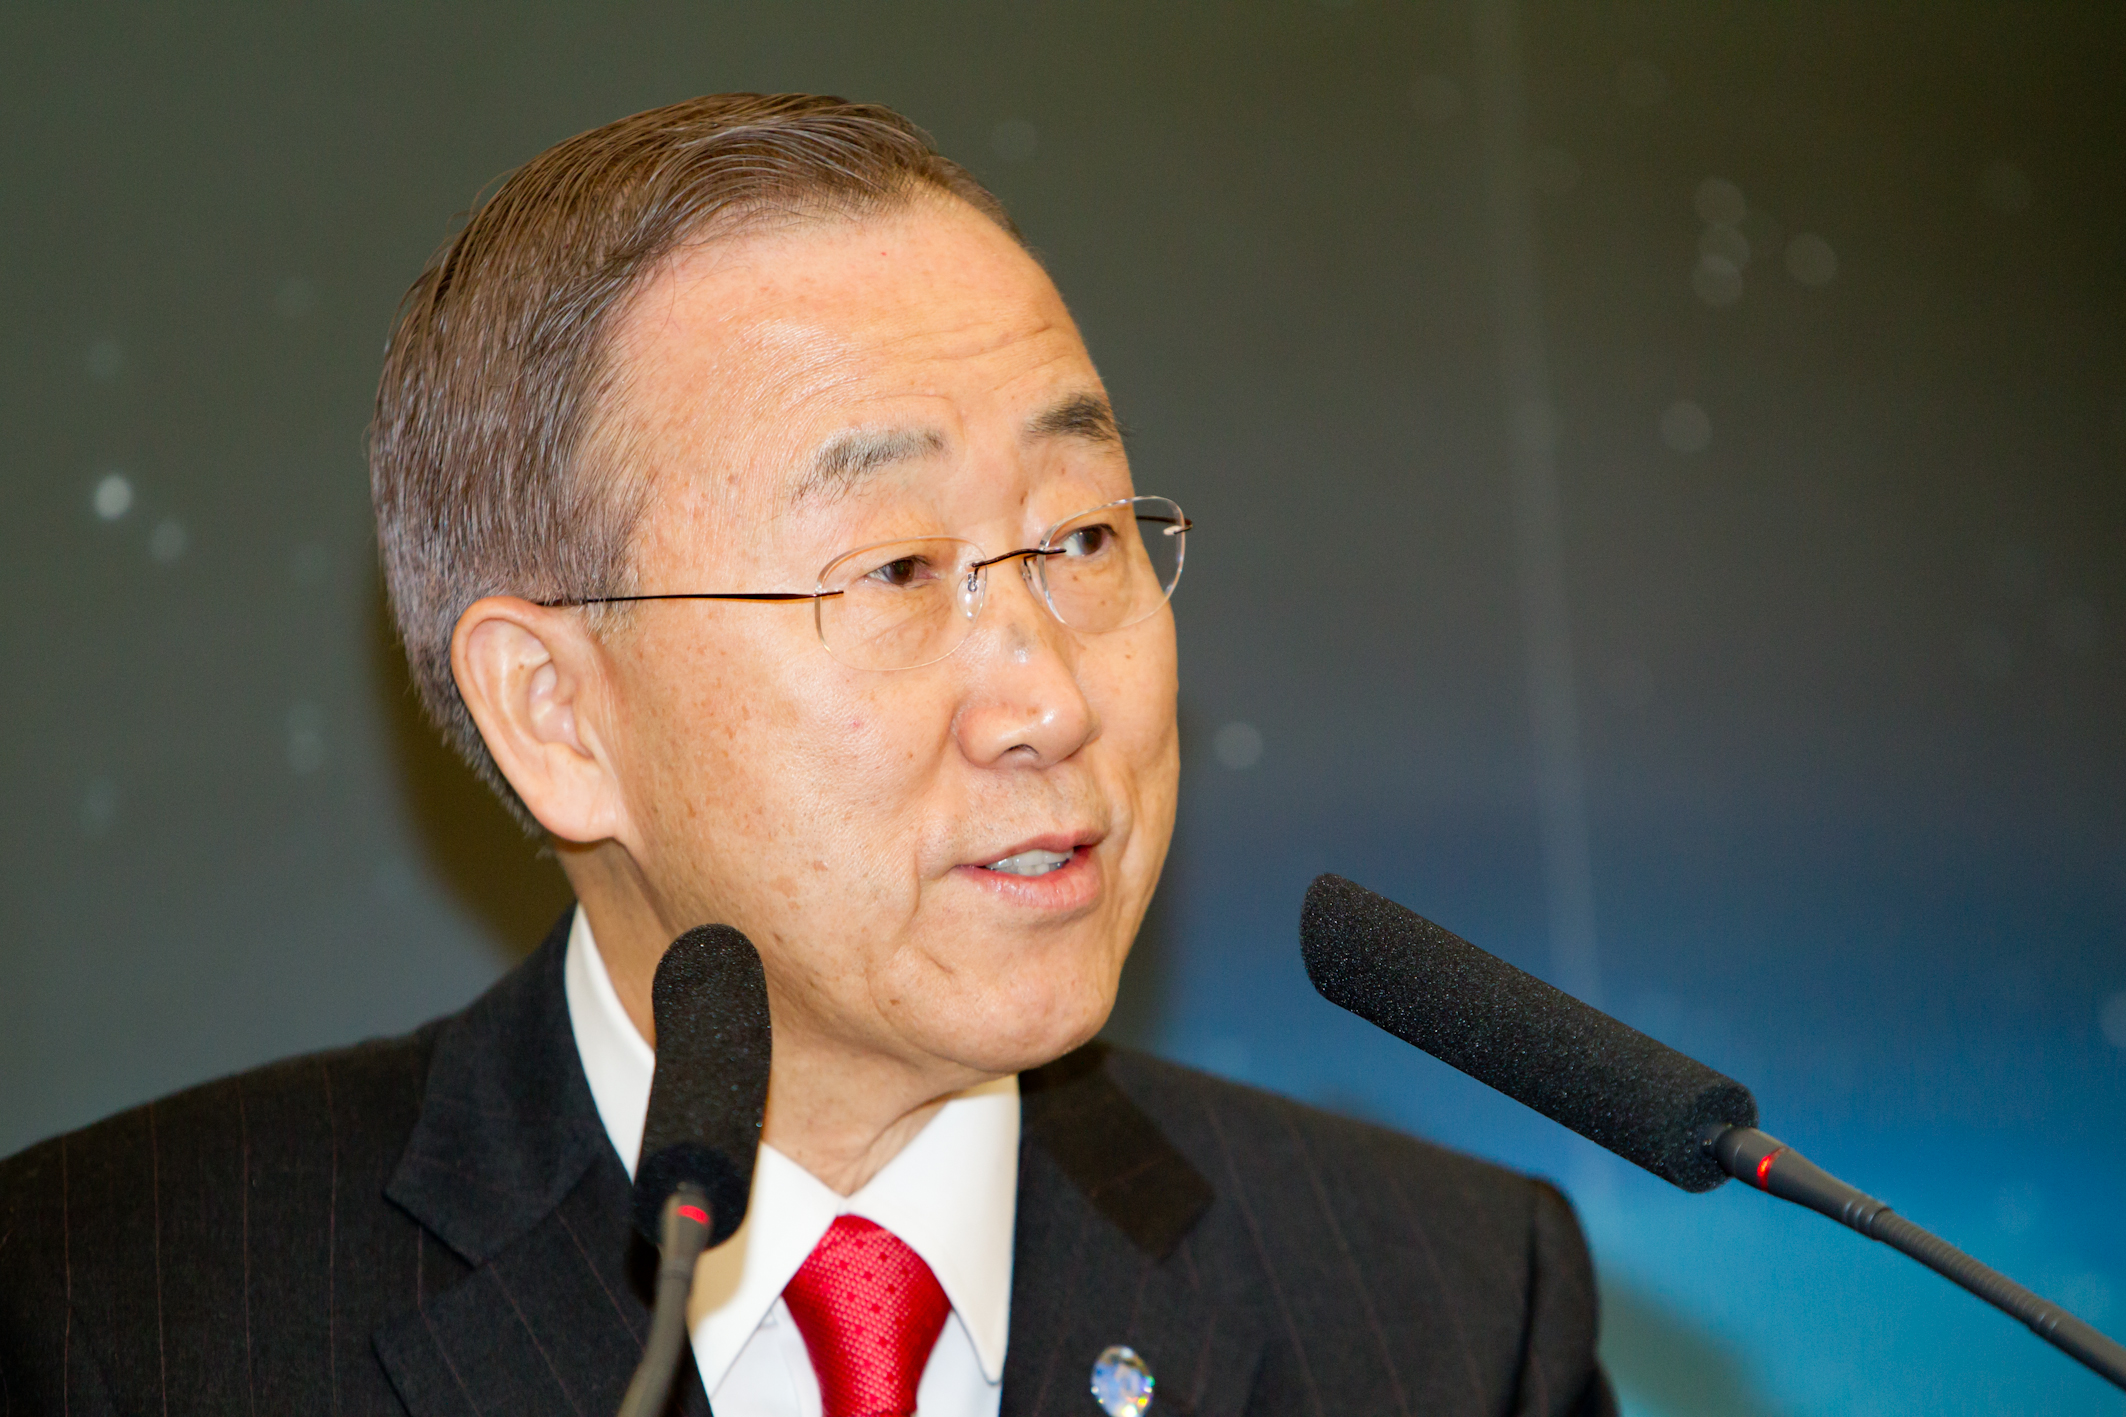 Former UN Secretary-General Ban Ki-moon Elected as Chair of the IOC Ethics Commission